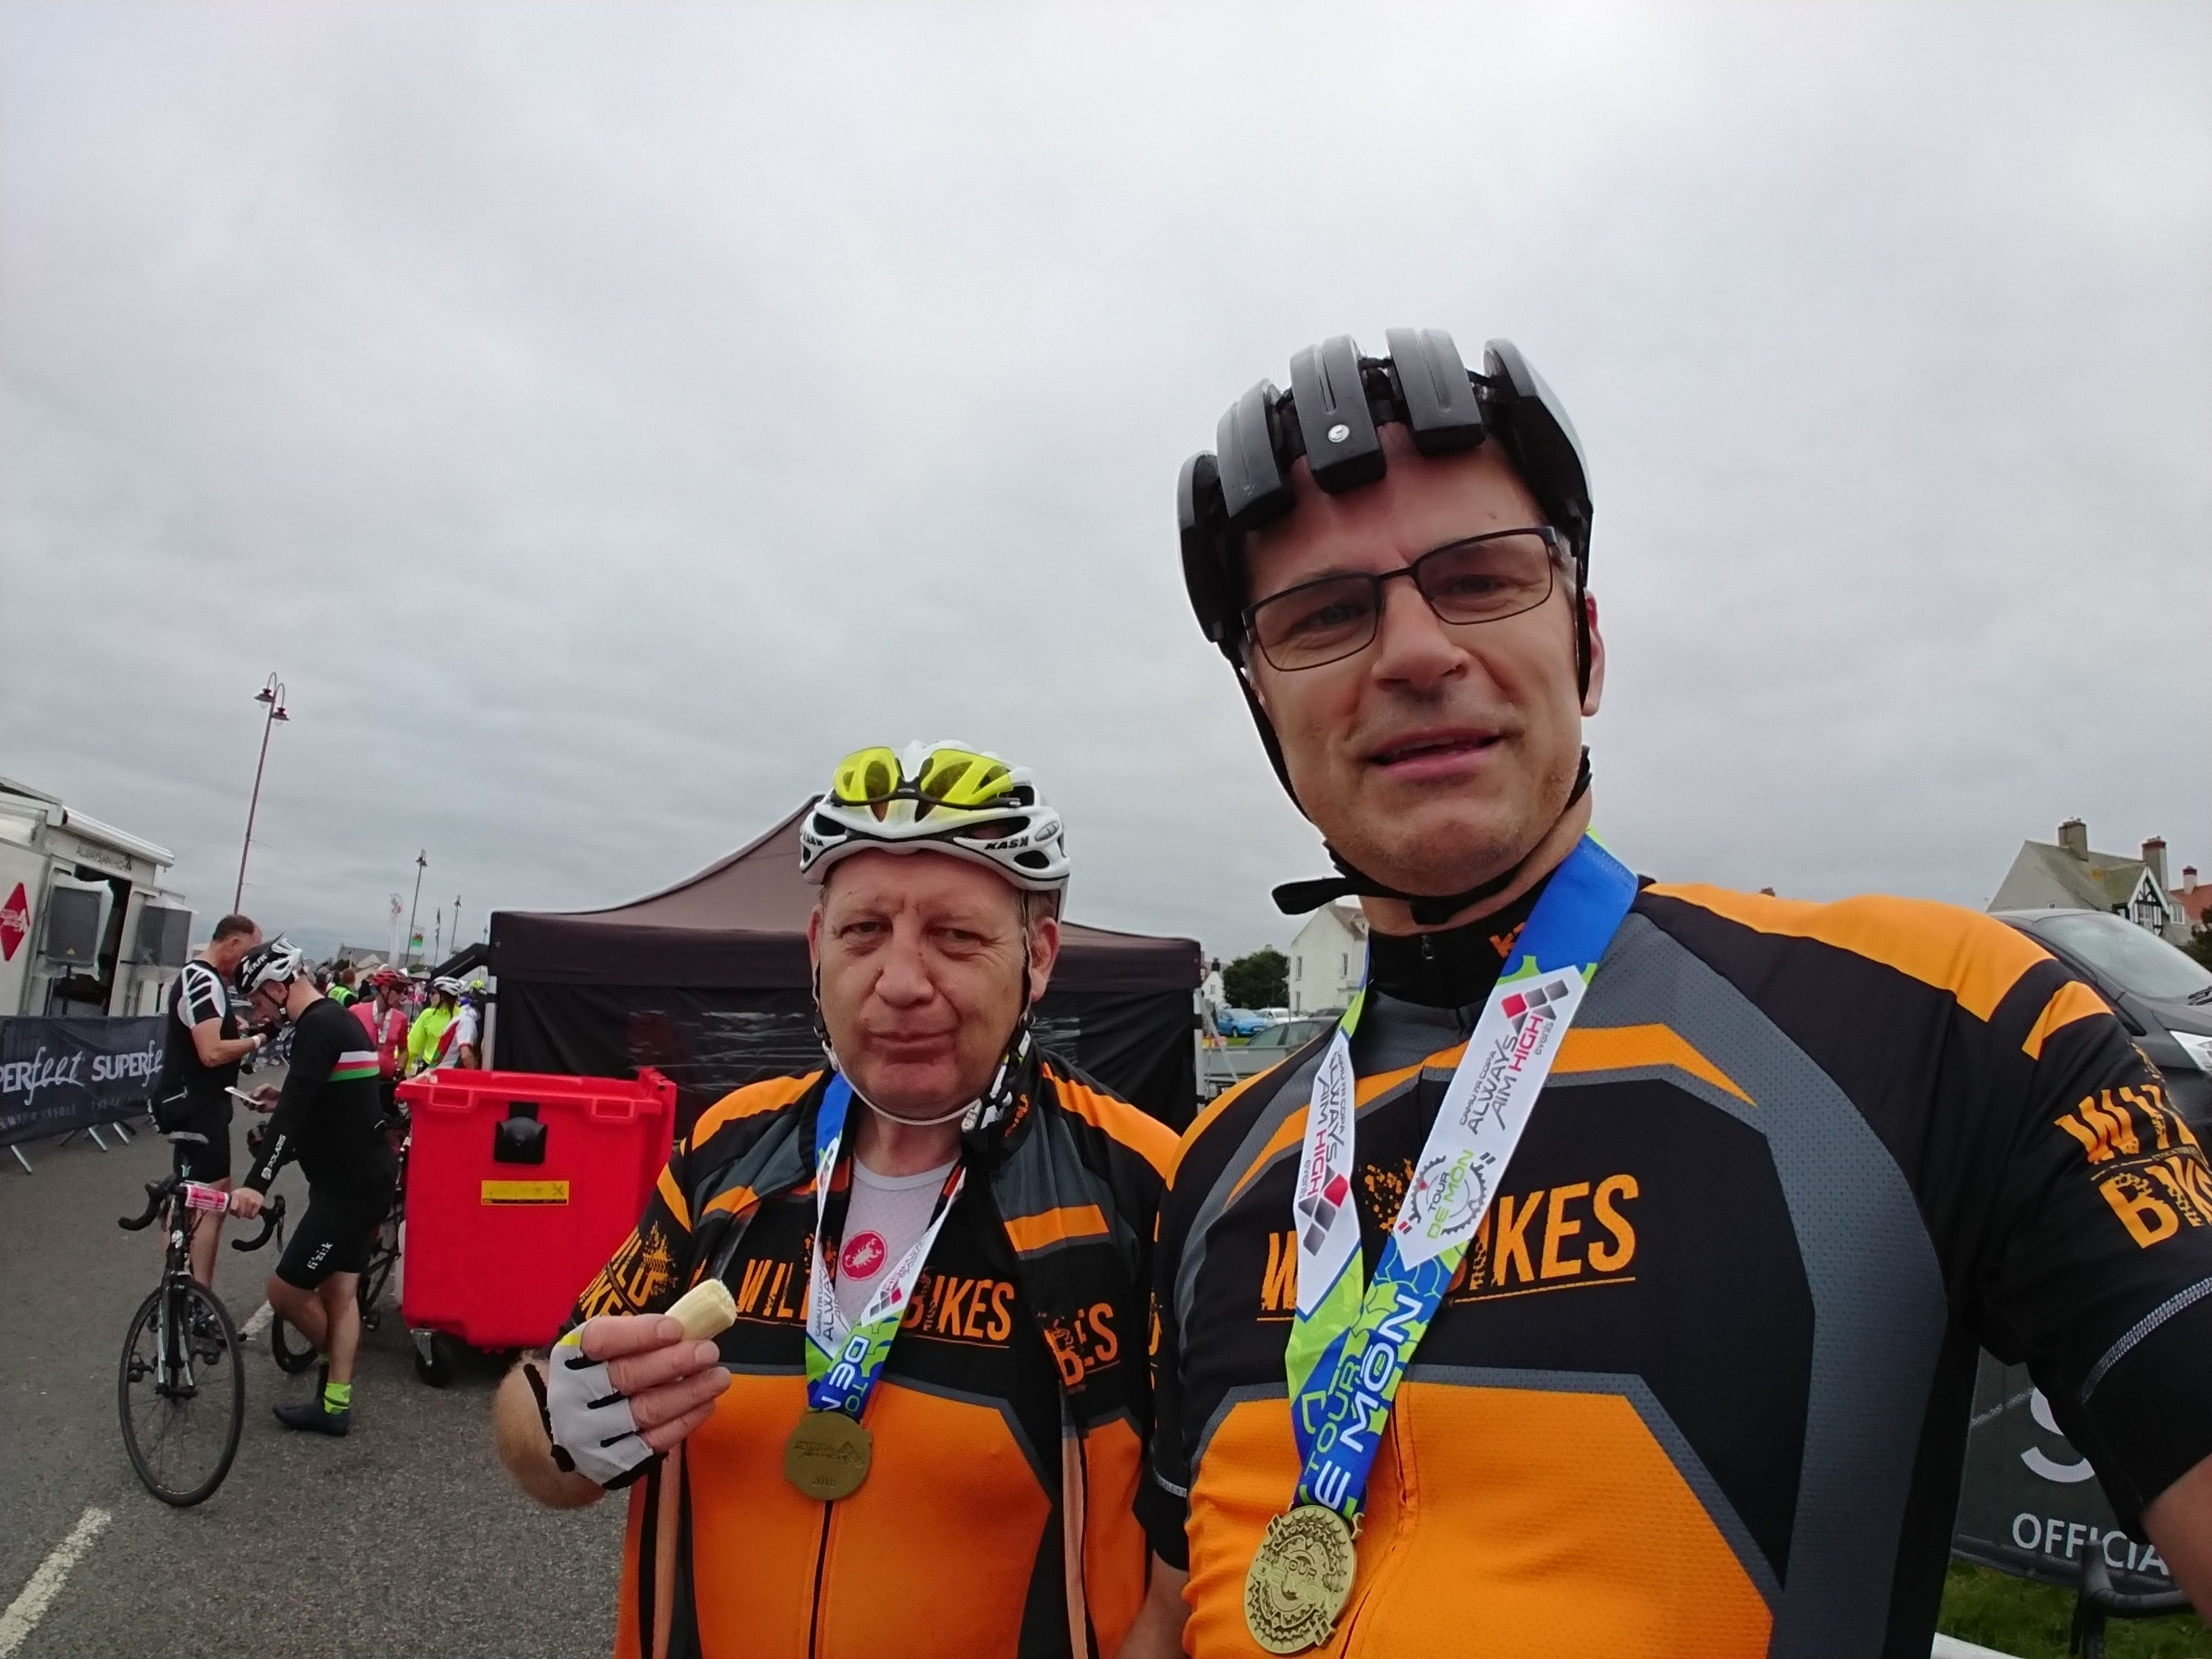 Nigel and Mike proudly sporting their Tour de Mon medals